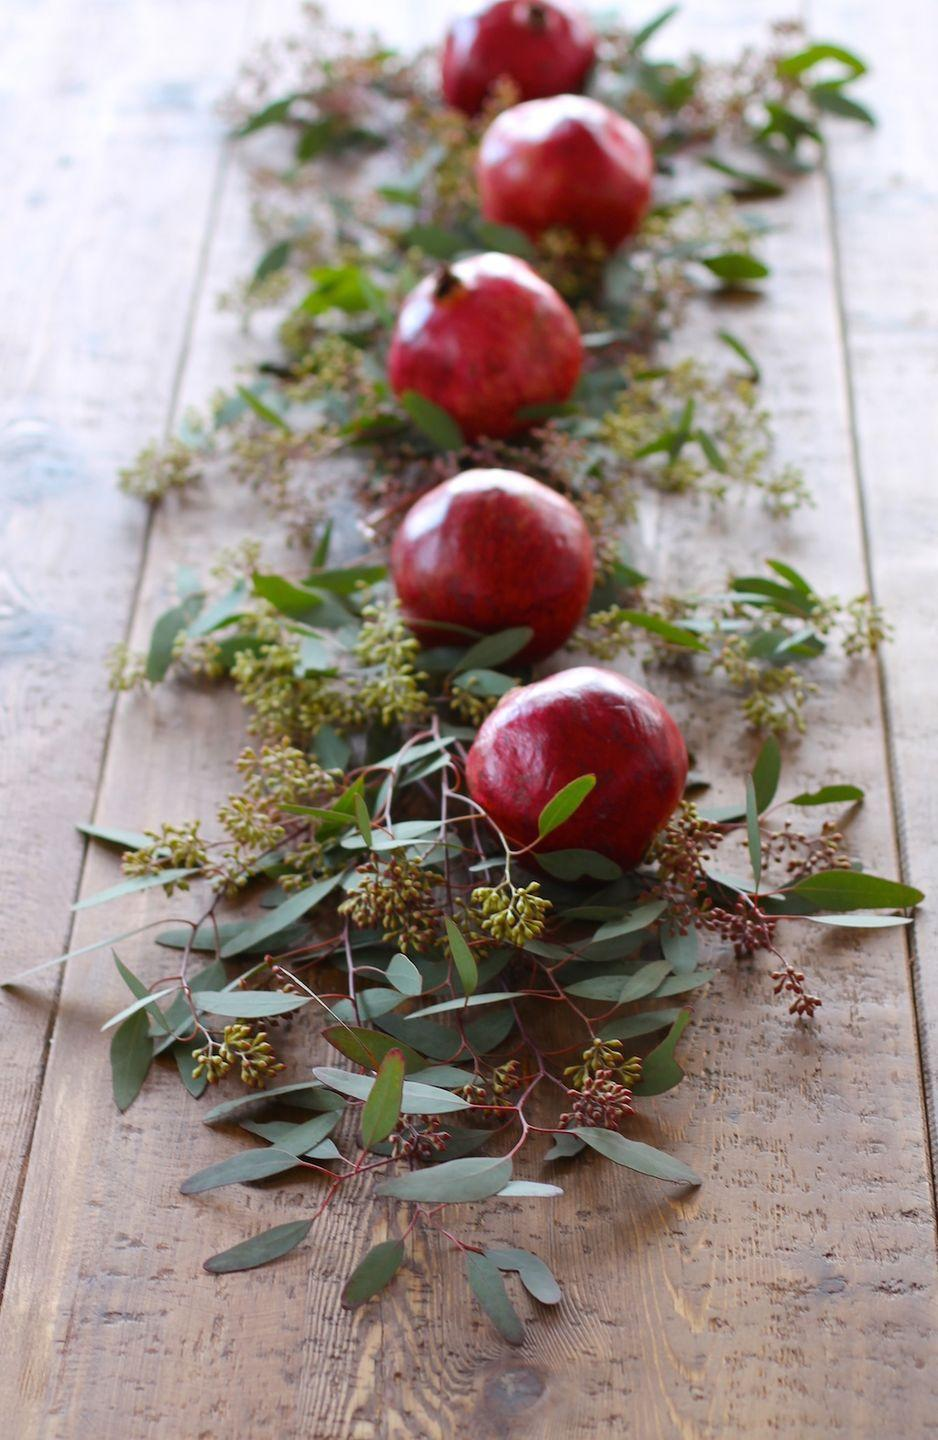 "<p>Bright red pomegranates make a festive addition to a table runner.</p><p>See more at <a href=""http://julieblanner.com/5-minute-floral-christmas-table-runner/"" rel=""nofollow noopener"" target=""_blank"" data-ylk=""slk:Julie Blanner"" class=""link rapid-noclick-resp"">Julie Blanner</a>. </p>"